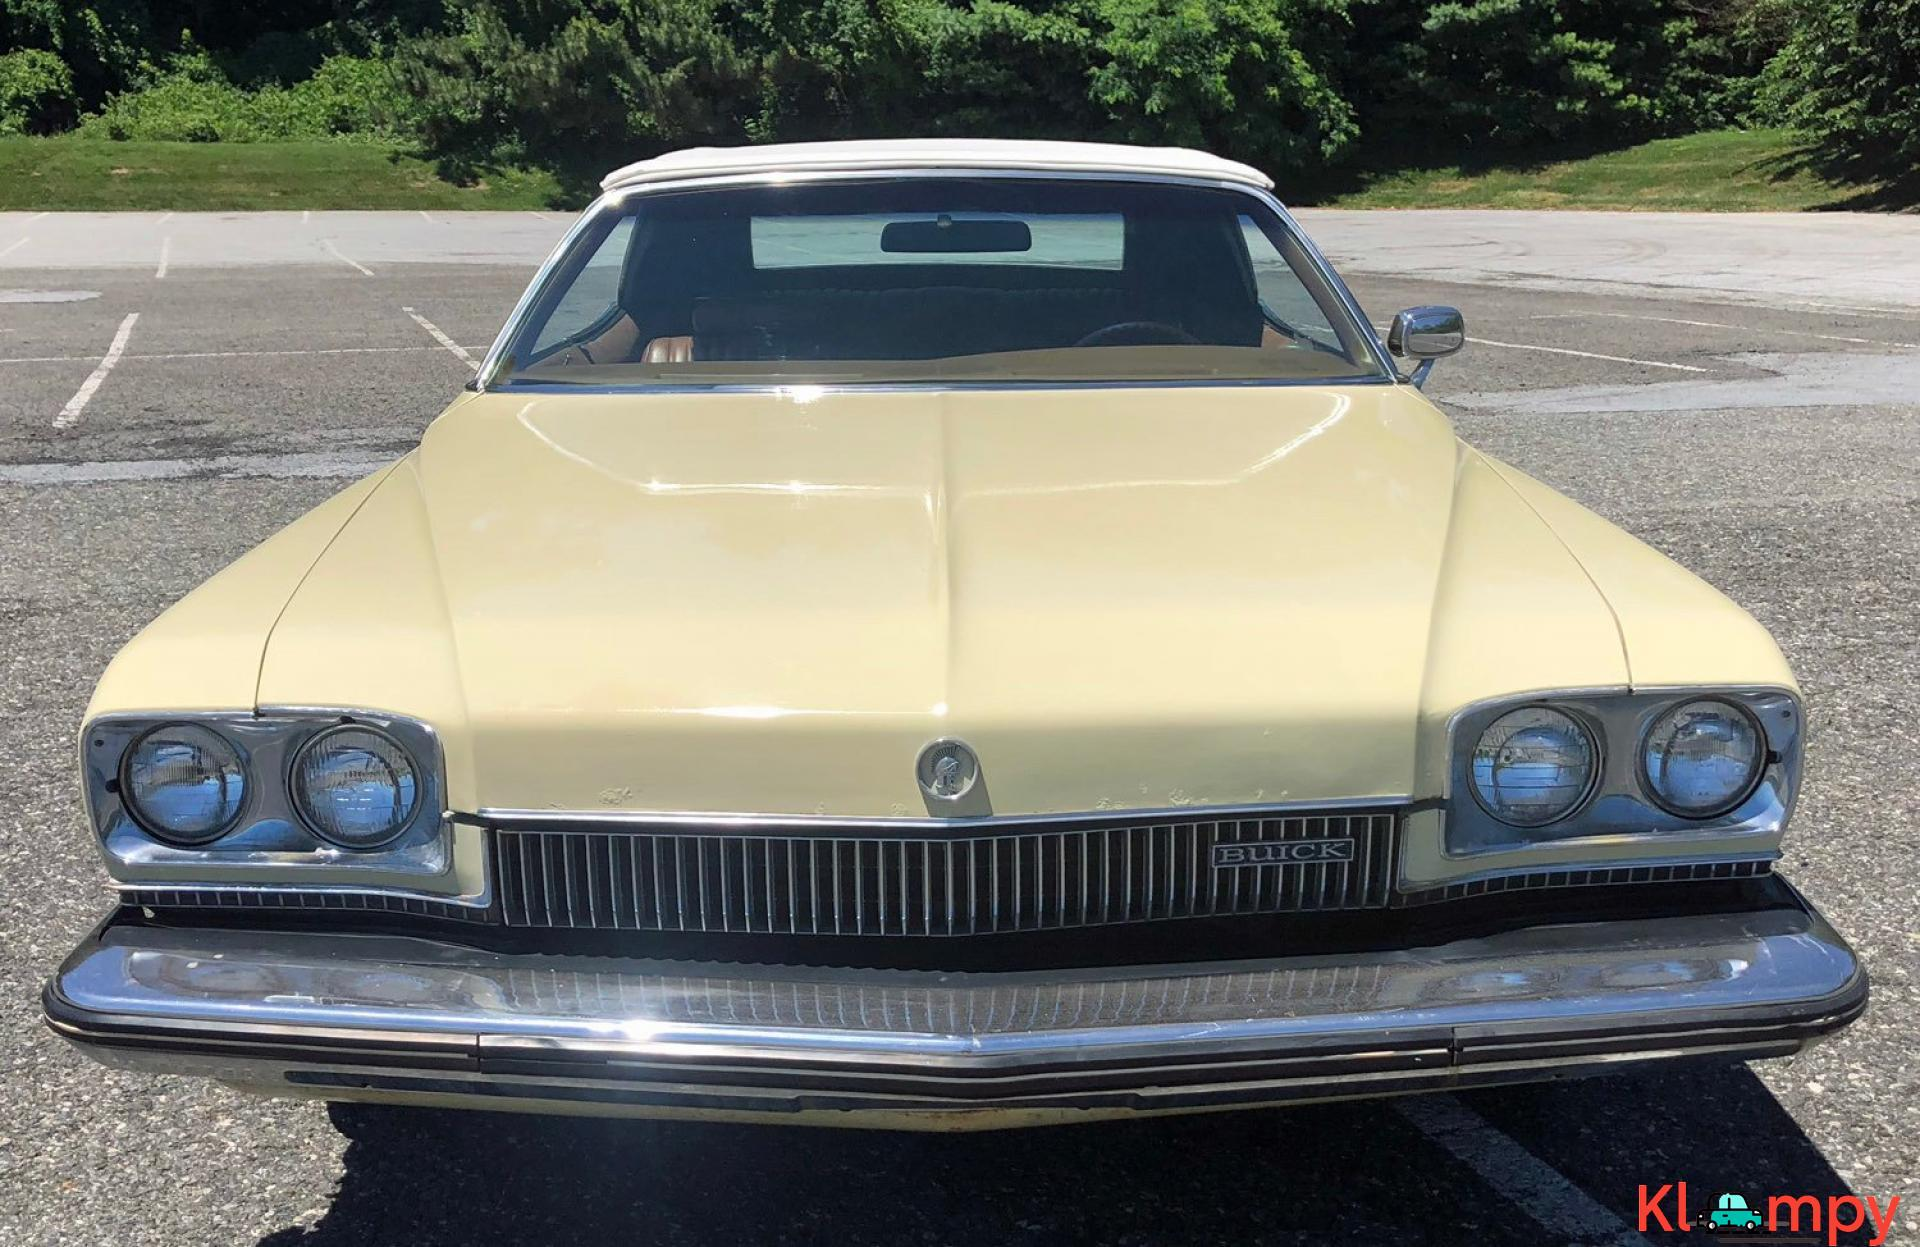 1973 Buick Centurion 350 Convertible V8 - 5/20